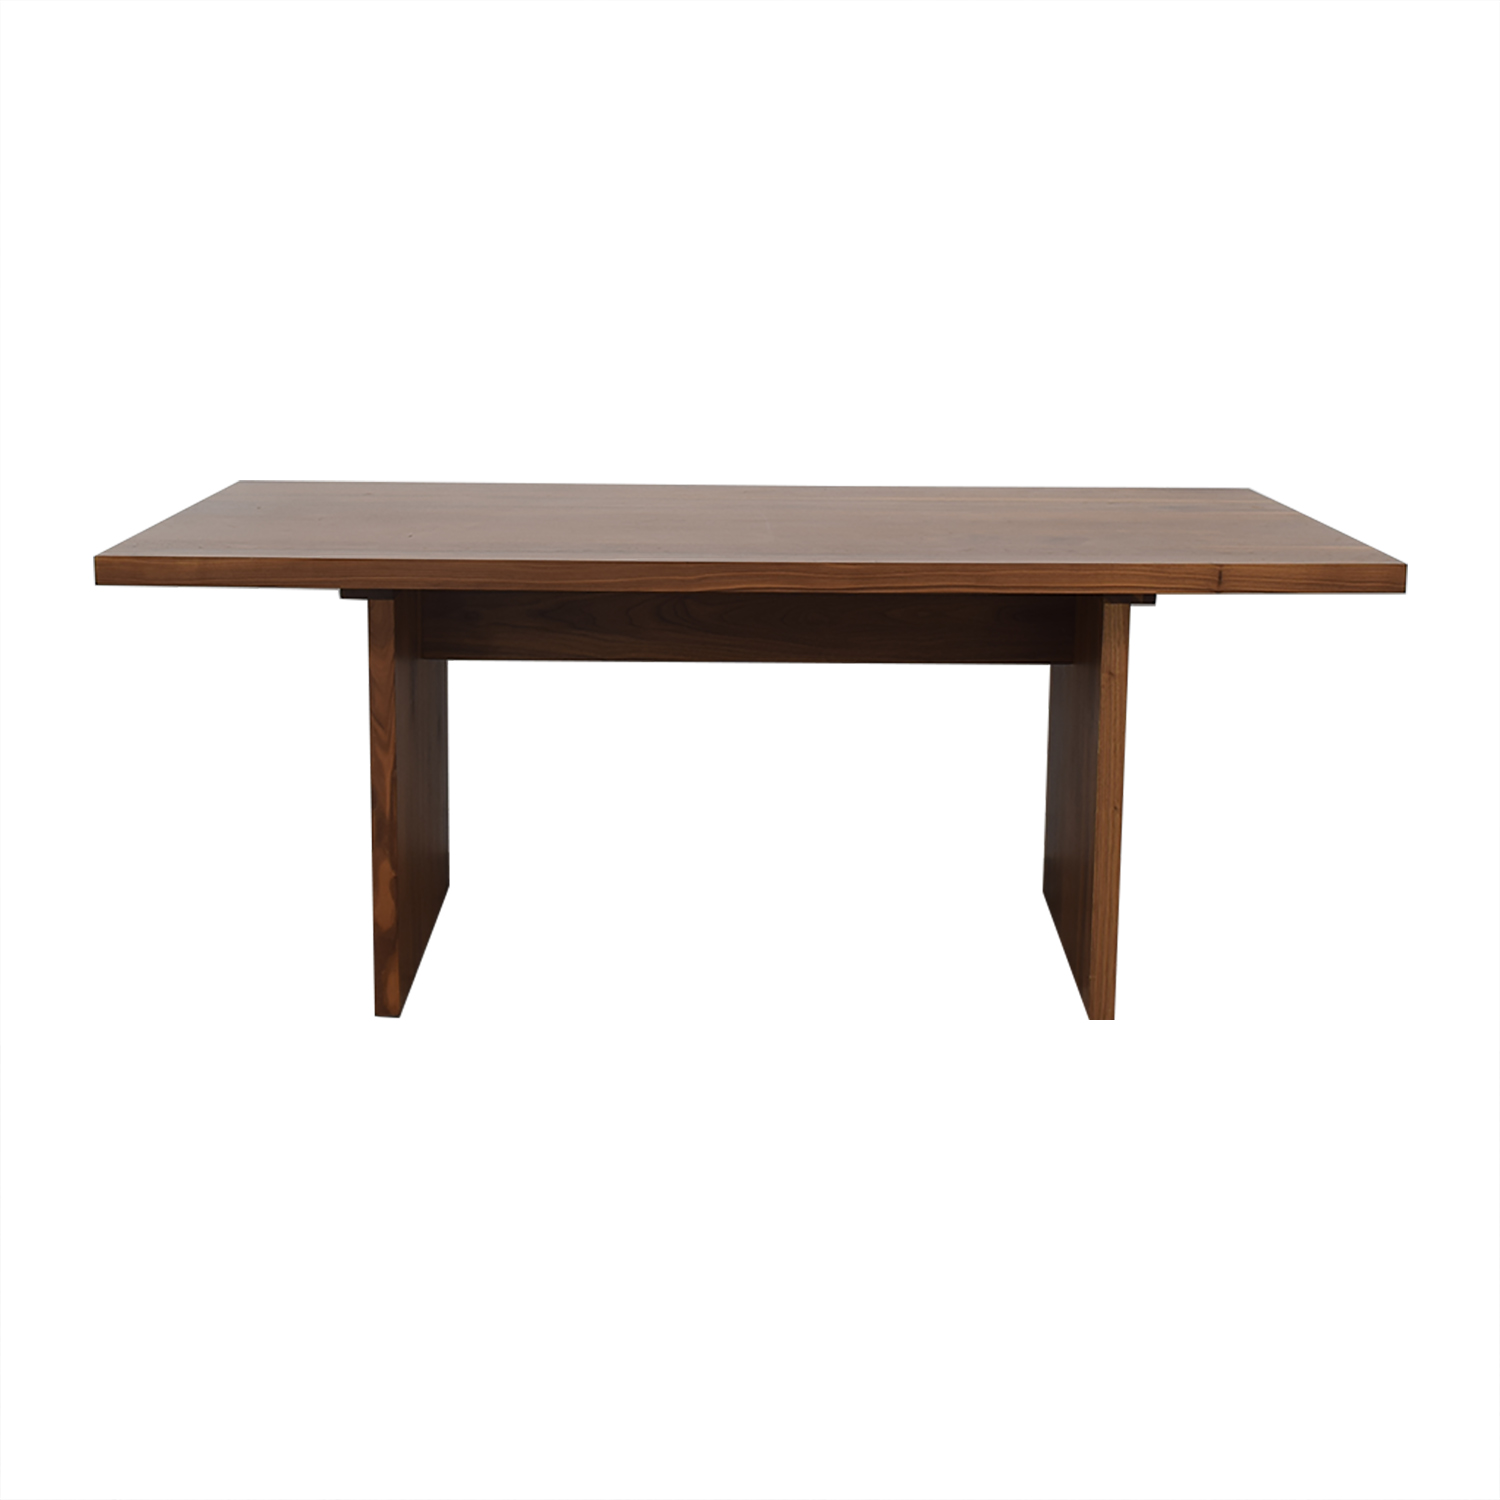 Room & Board Corbett Dining Table / Tables